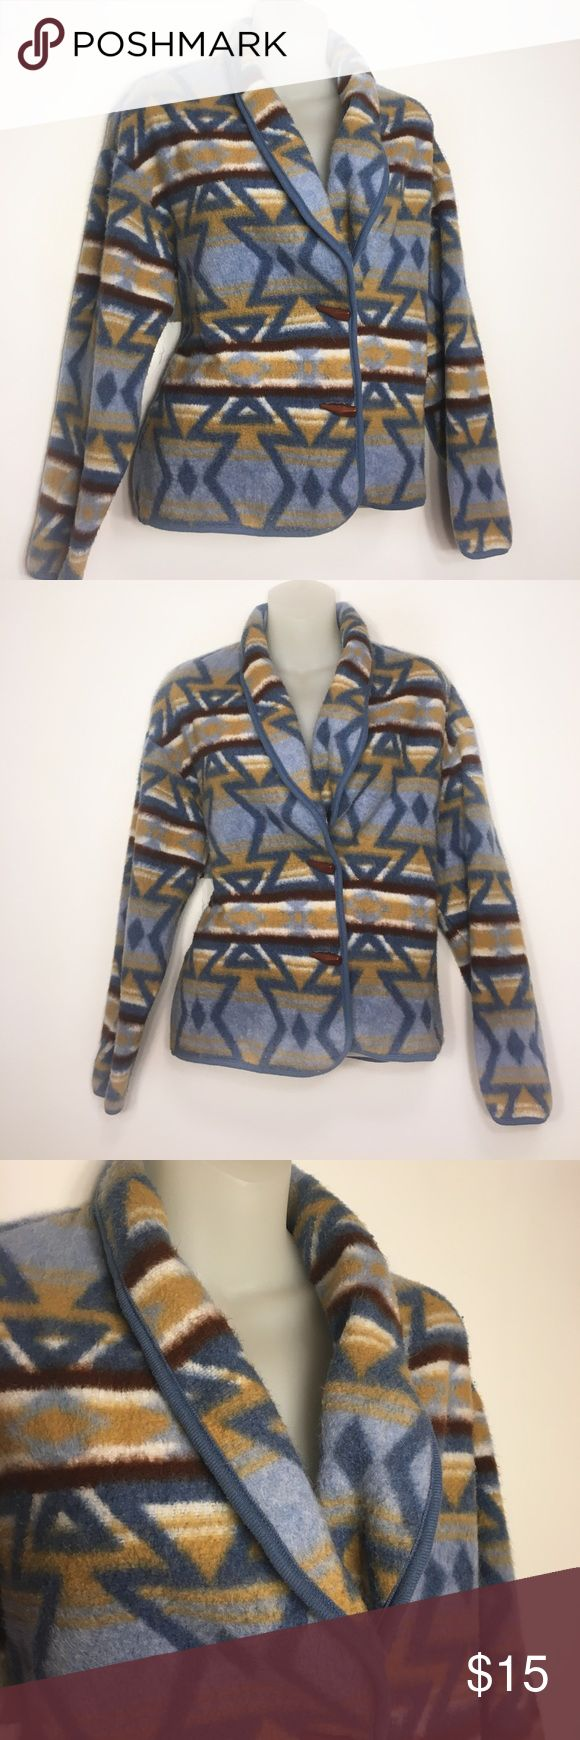 Aztec Jacket🌲 Cute David Wayne jacket with aztec pattern on it...in good condition🤤 size small!!! Comment below with questions, concerns, or offers. David Wayne Jackets & Coats